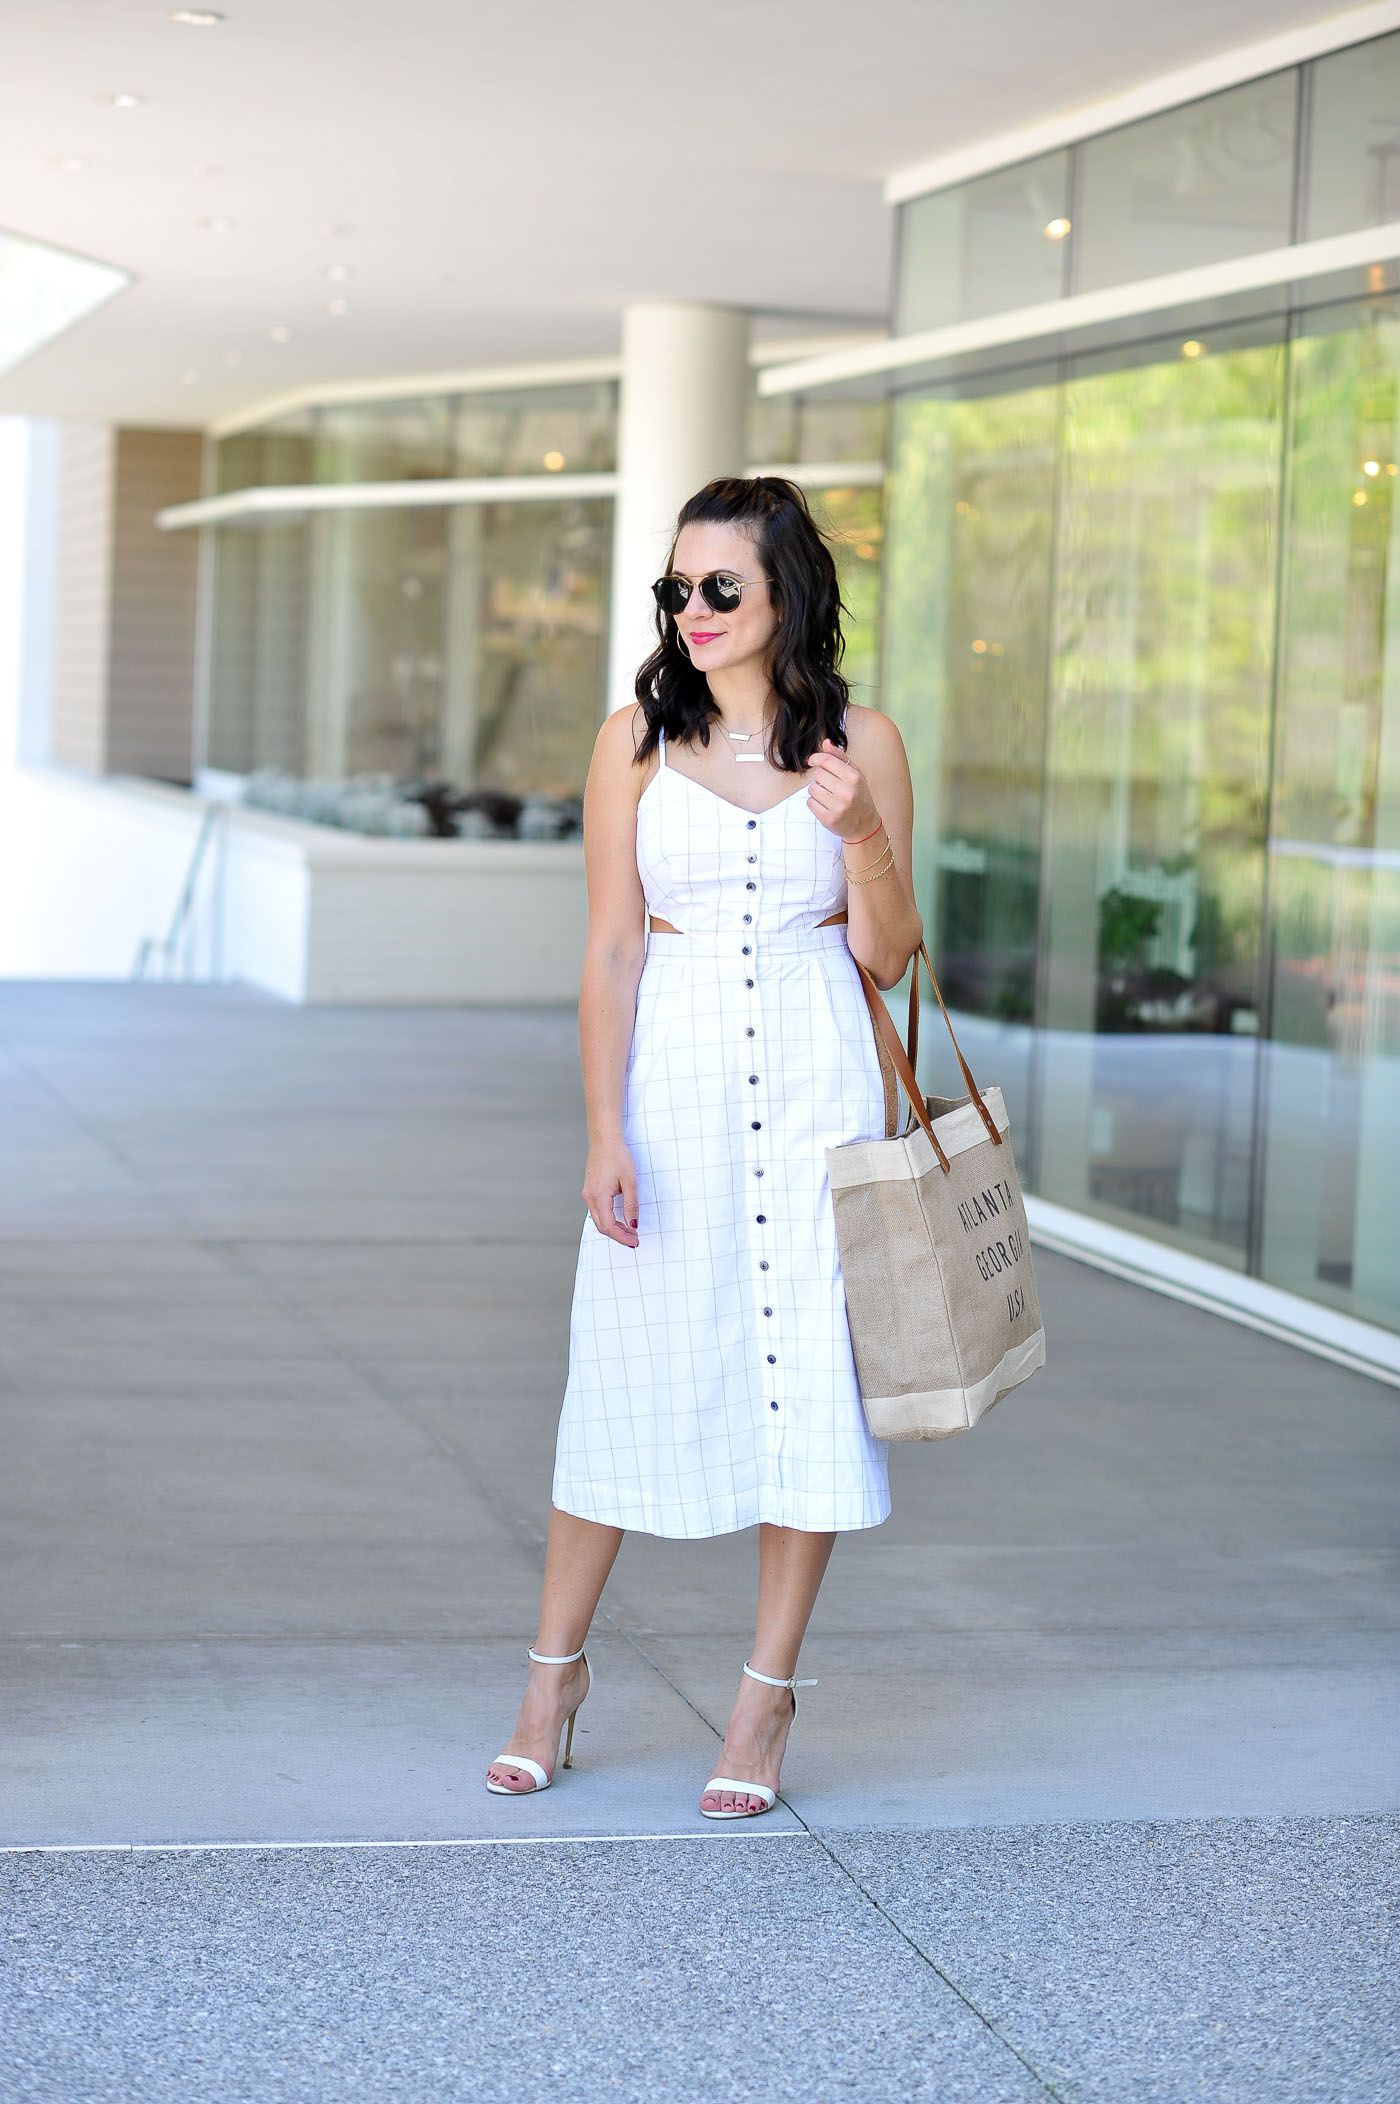 White Midi Dress | My Style Vita. White checked cut-outs midi dress+white ankle strap heeled sandals+brown fabric tote bag+gold necklace+sunglasses. Summer Casual Outfit 2017